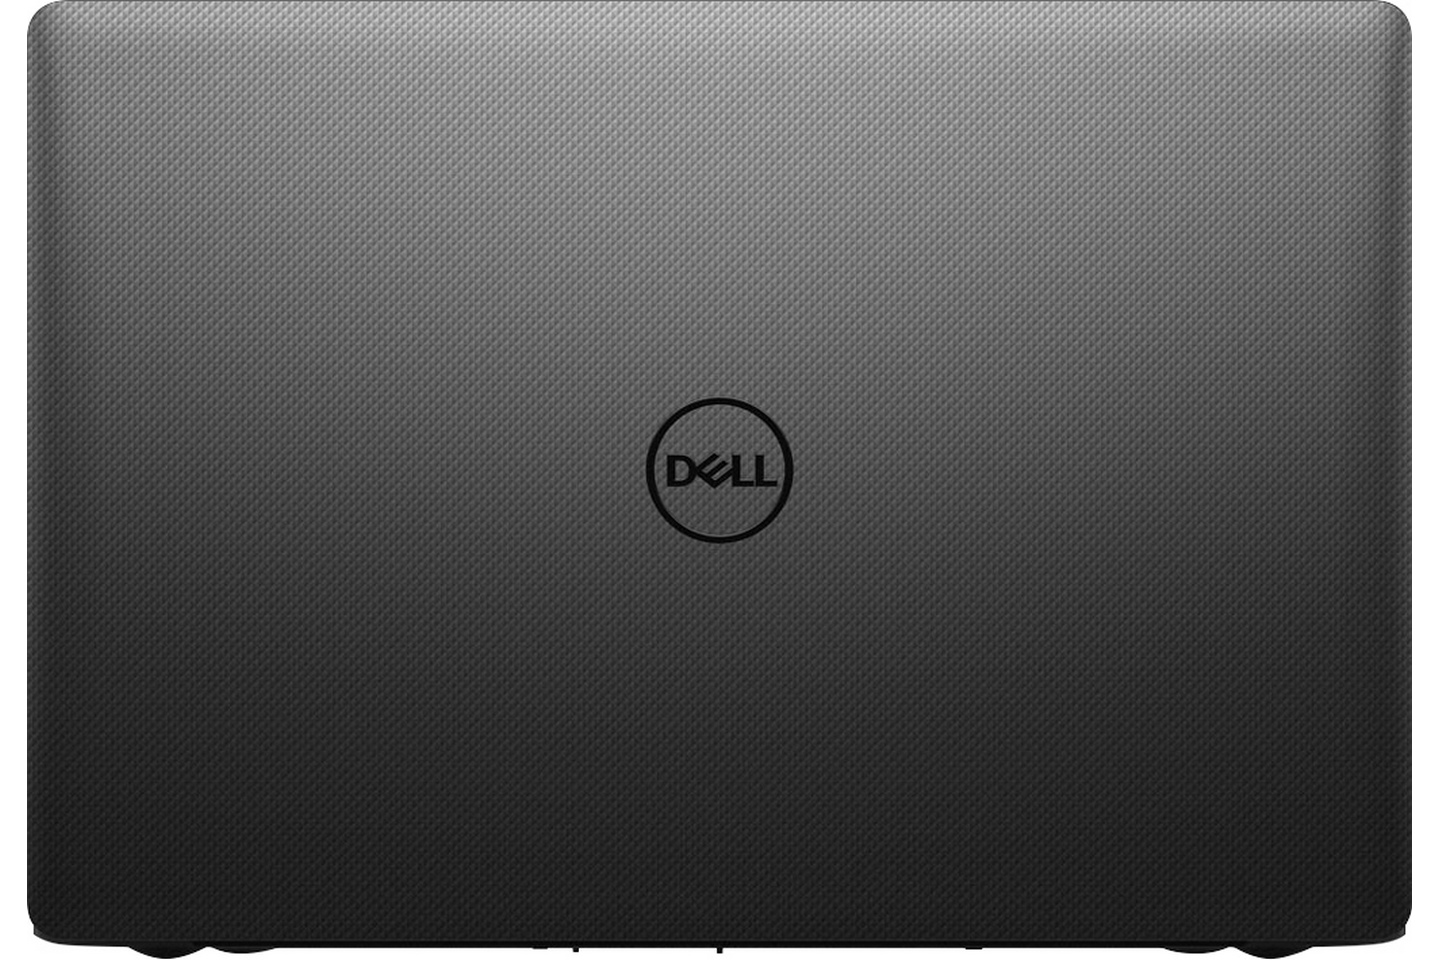 Laptop Dell Vostro 3590 V5I3101W sử dụng pin 3Cells 42Whrs